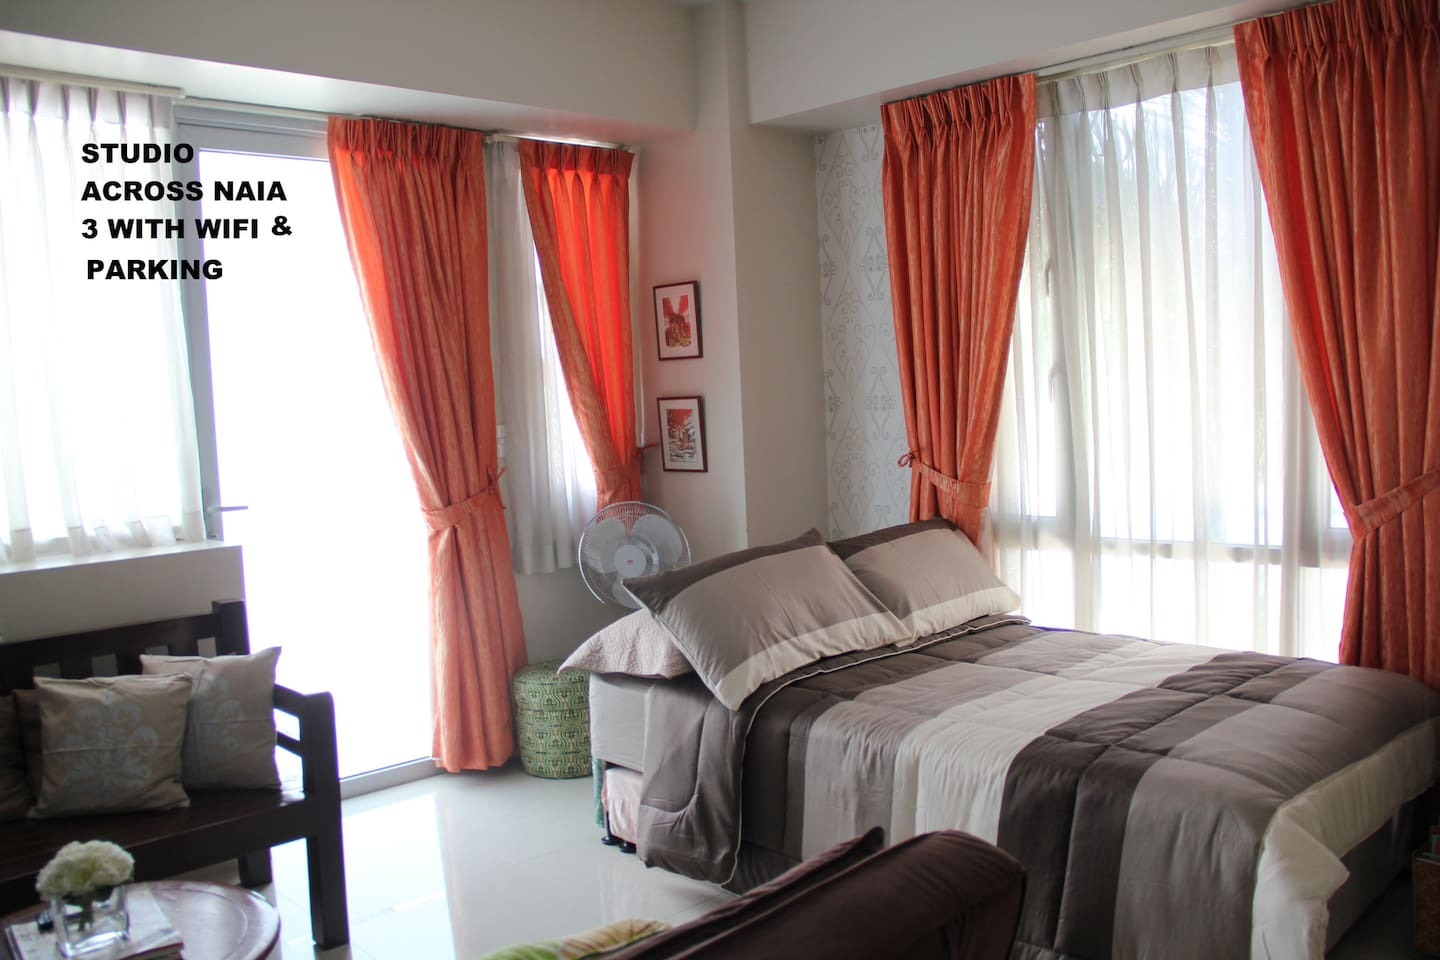 Real bed (semi-double) with pull-out bed in studio unit near Resorts World and NAIA Terminal 3